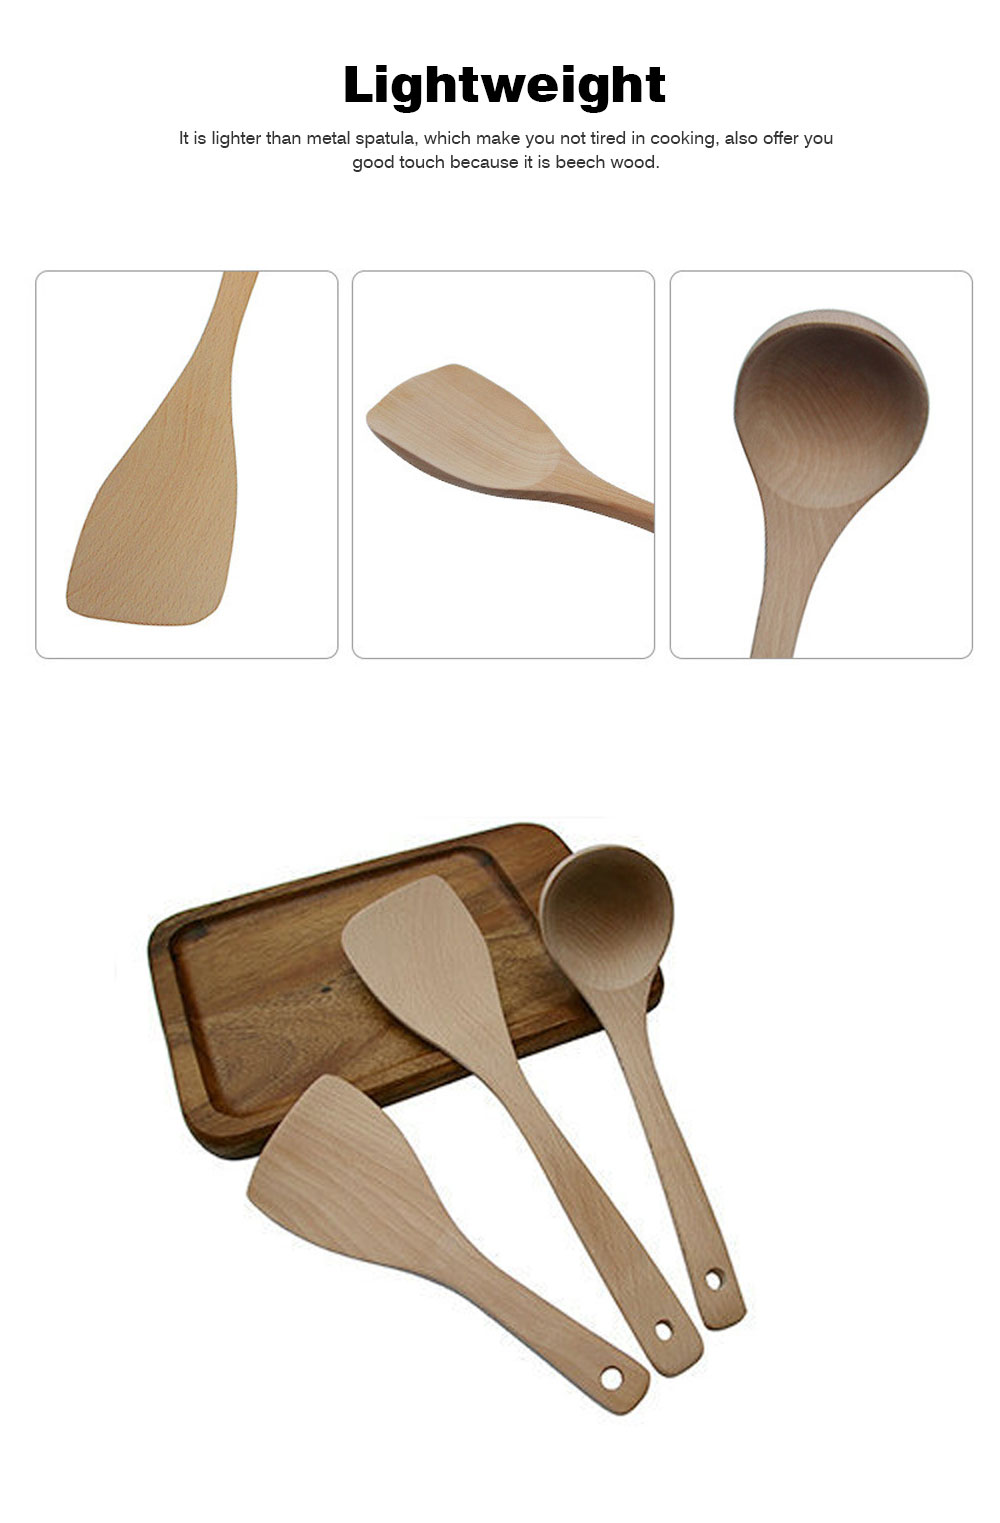 Creative Kitchen Utensils Sets - Beech Wood Shovel Lacquer Long Handle, Non-stick Spatula Inclined Cooking Shovel, 5 Pieces 5